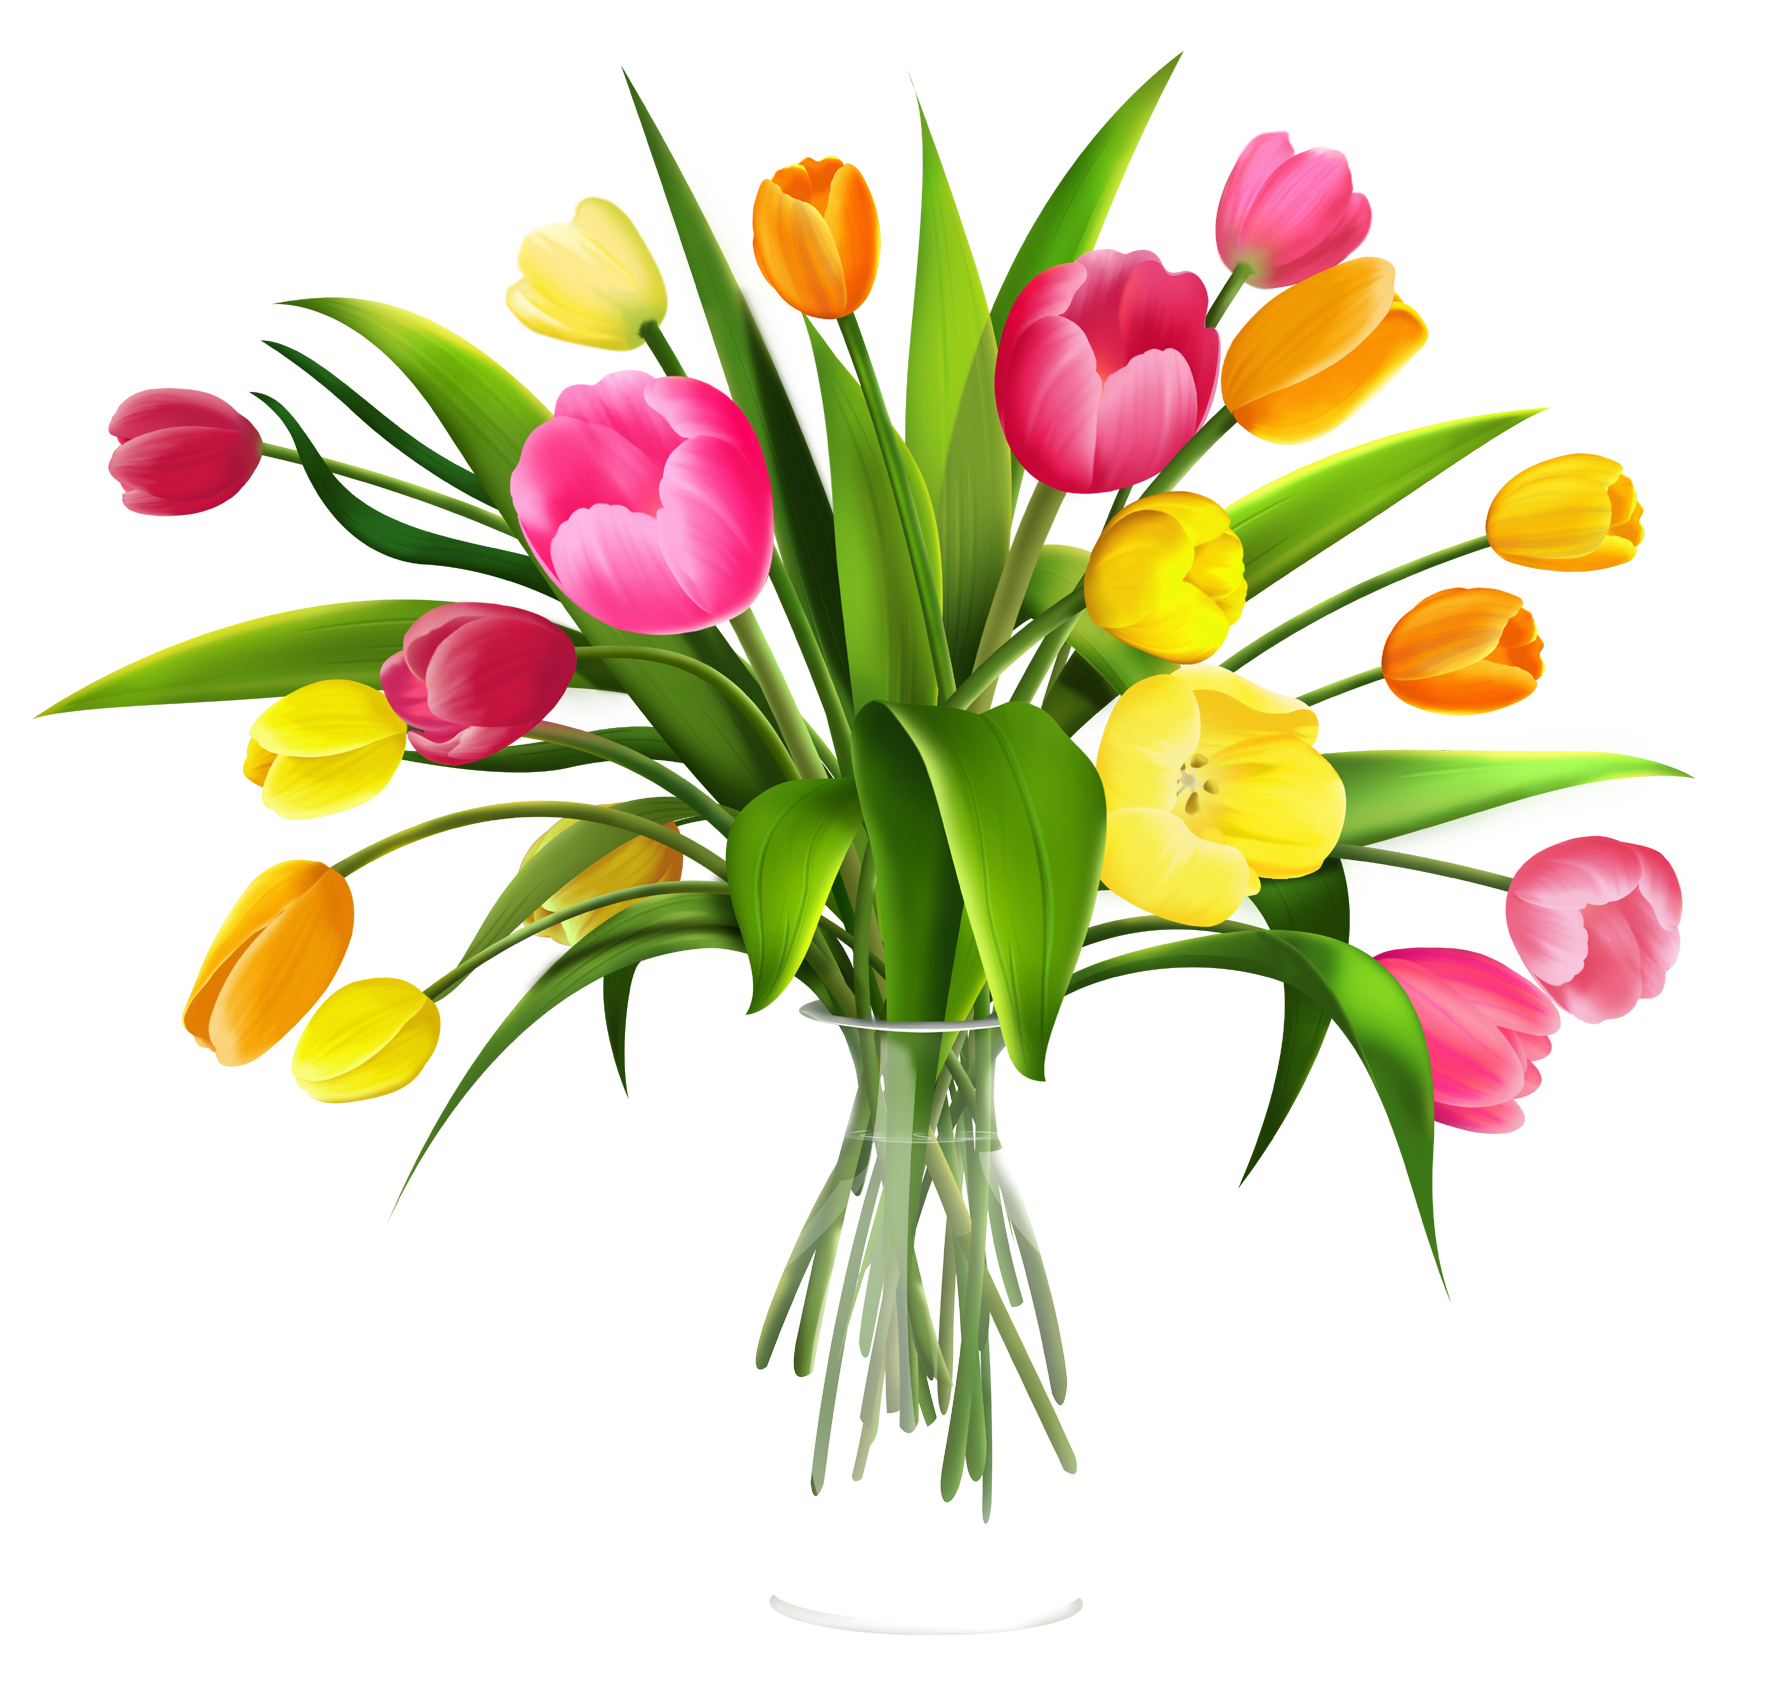 Art picture of flowers freeuse Free Clip Art Flowers in Vase | Use these free images for your ... freeuse